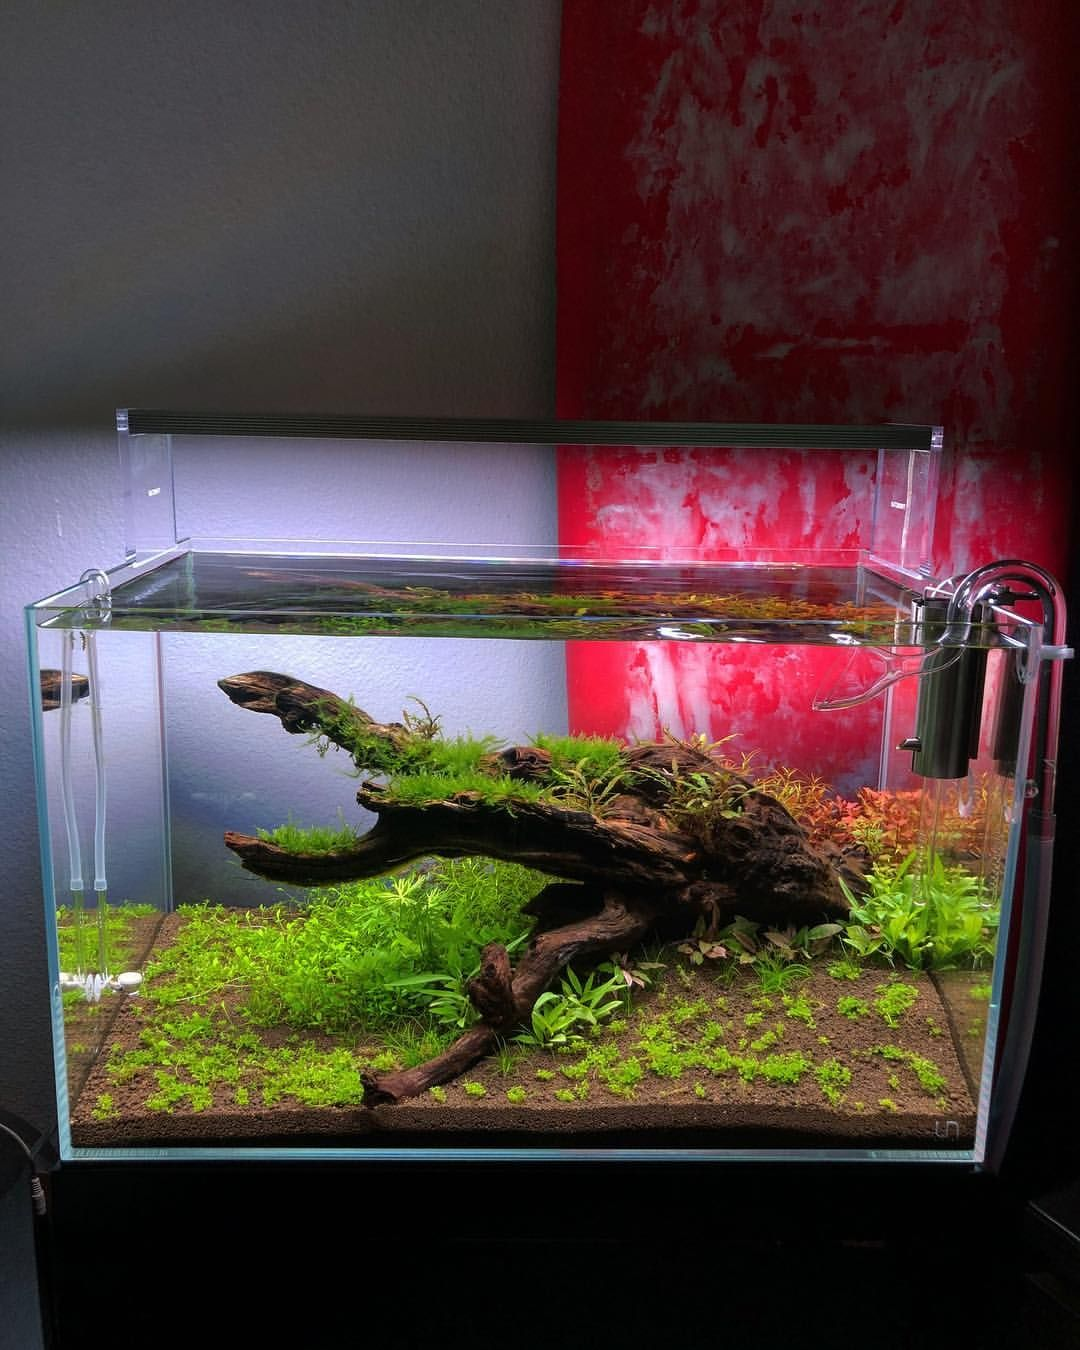 Despite The Small Gha I Ve Been Dealing With This Tank Is Chugging Along All Plants Are Tissue Culture And Pacif Aquascape Aquarium All Plants Aquatic Plants